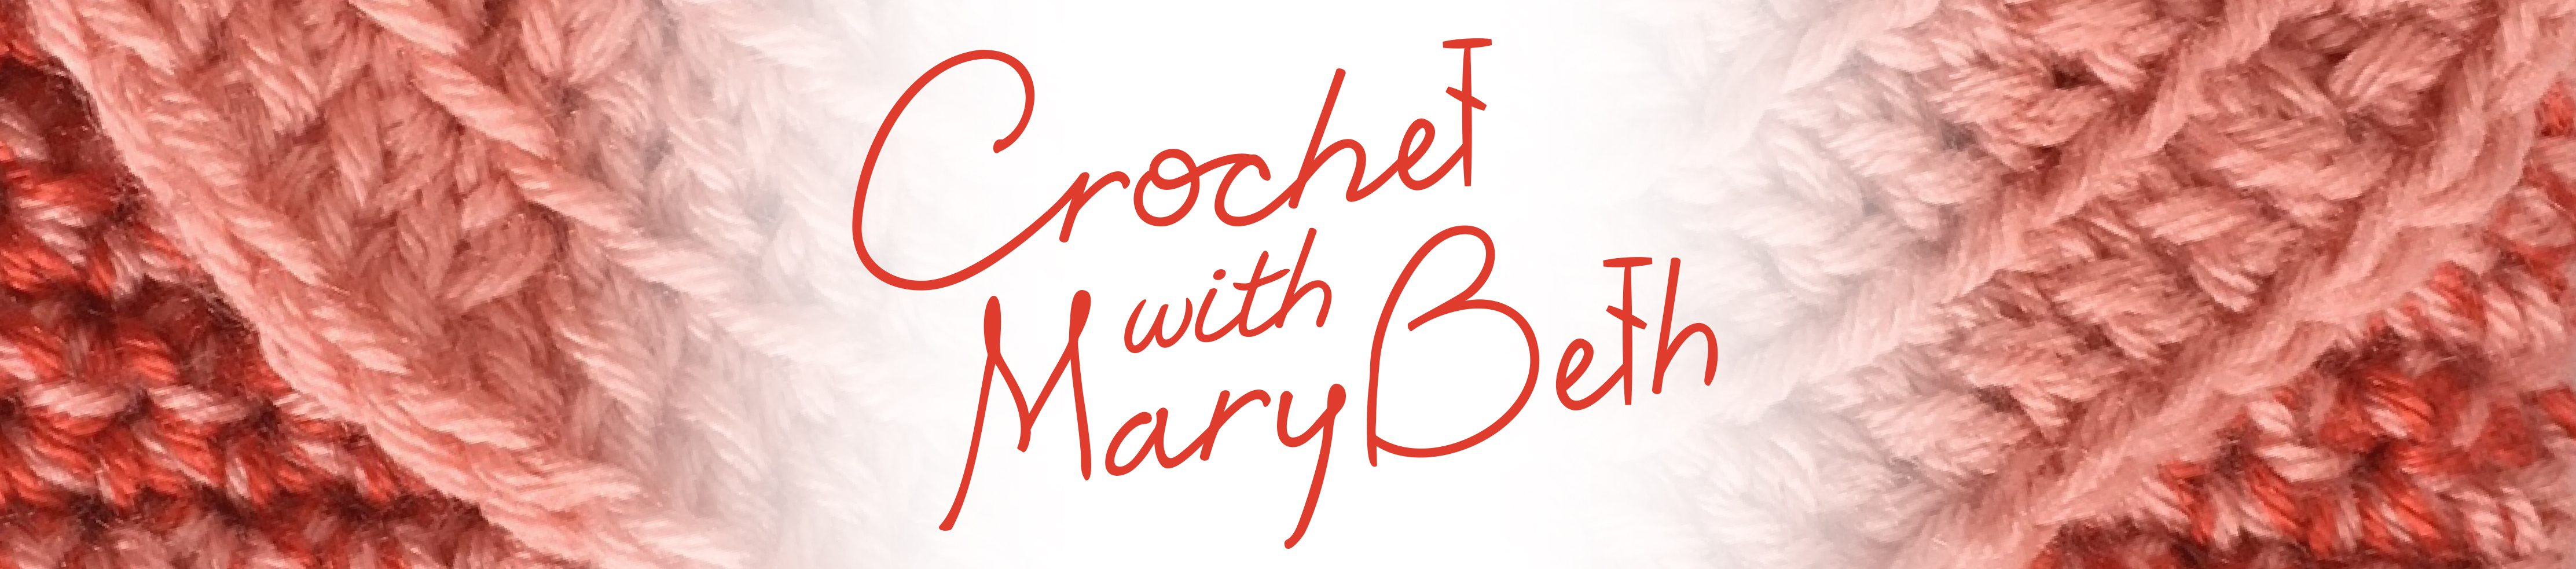 Crochet with Mary Beth